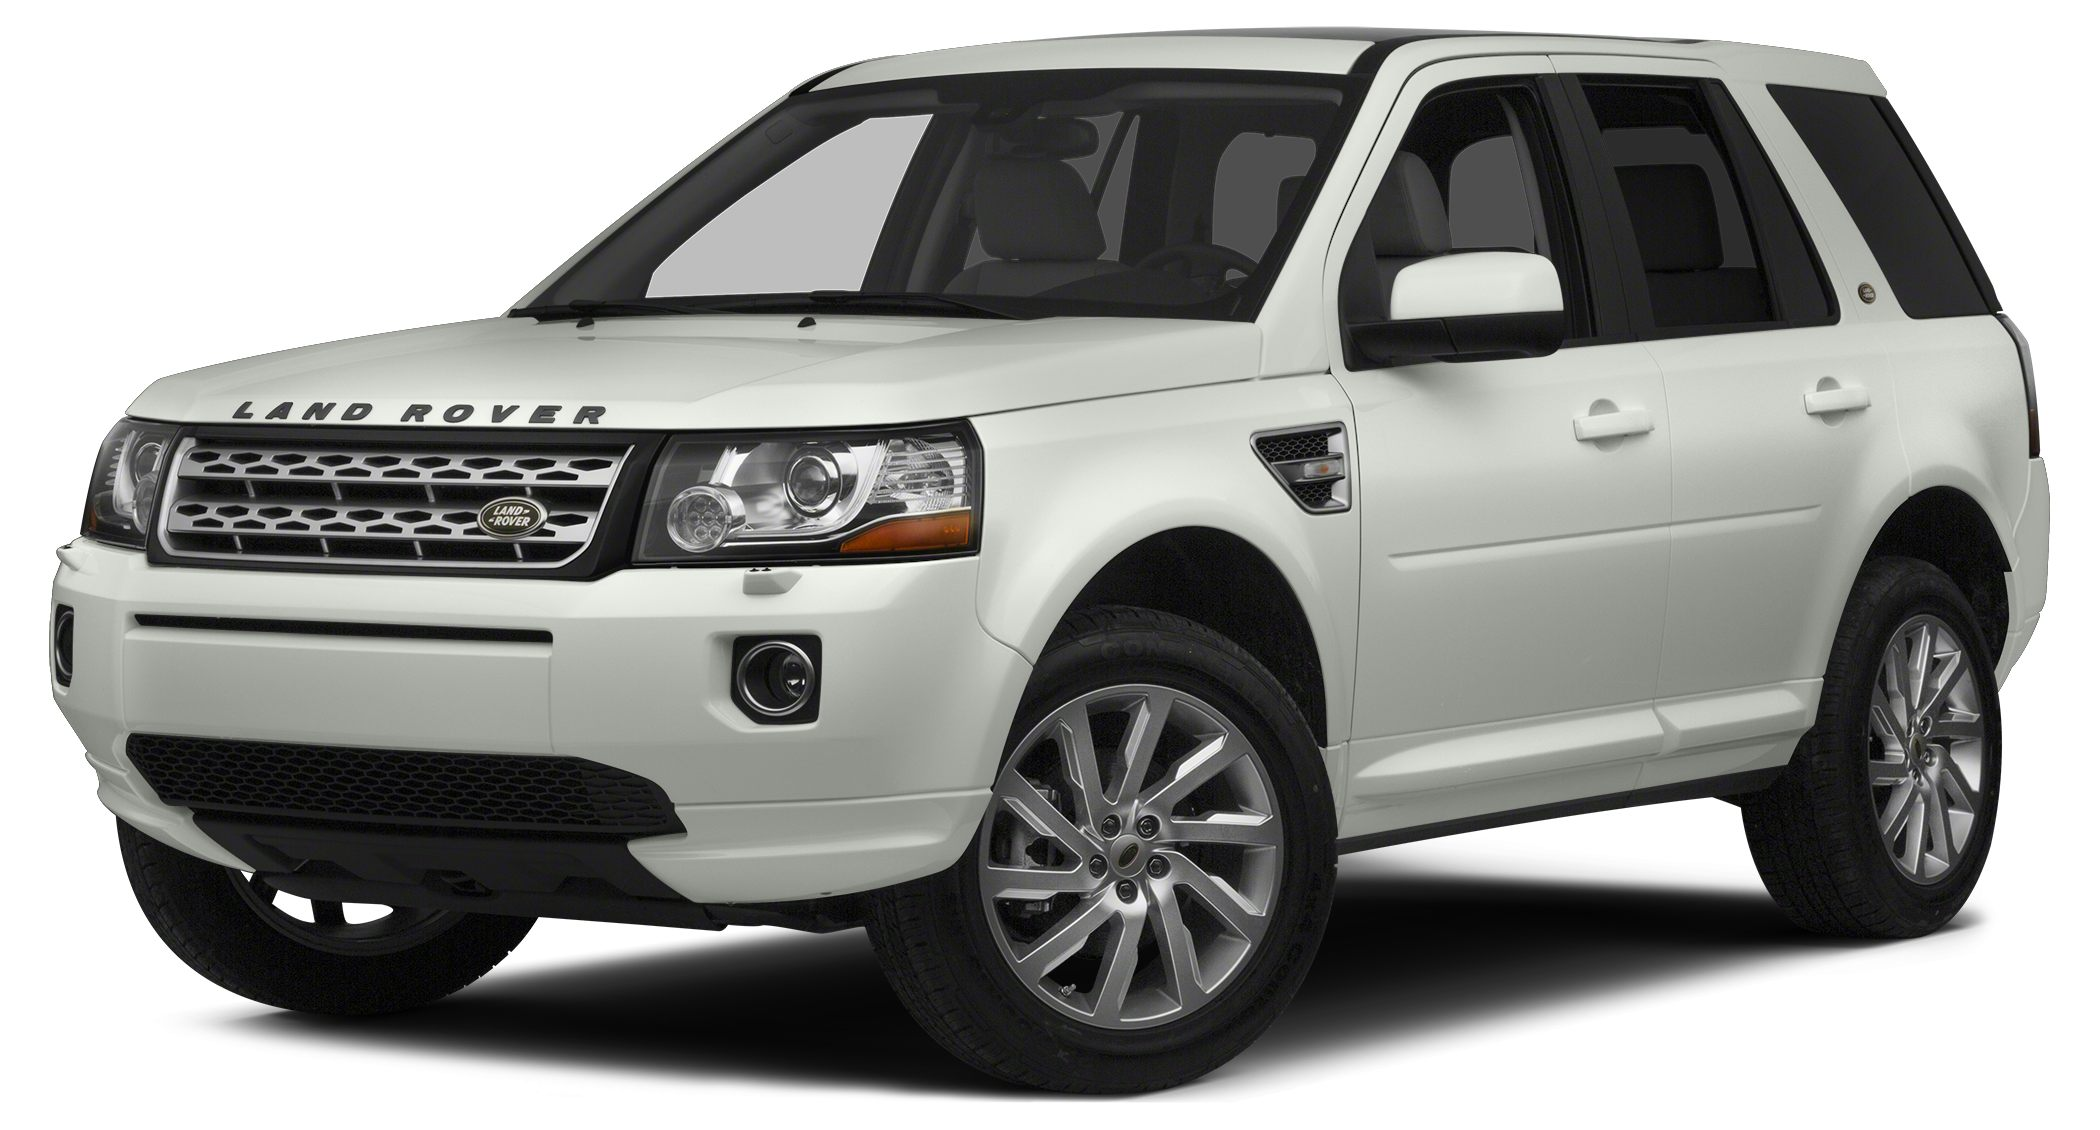 2015 Land Rover LR2 Base JUST REPRICED FROM 36999 FUEL EFFICIENT 24 MPG Hwy17 MPG City Superb